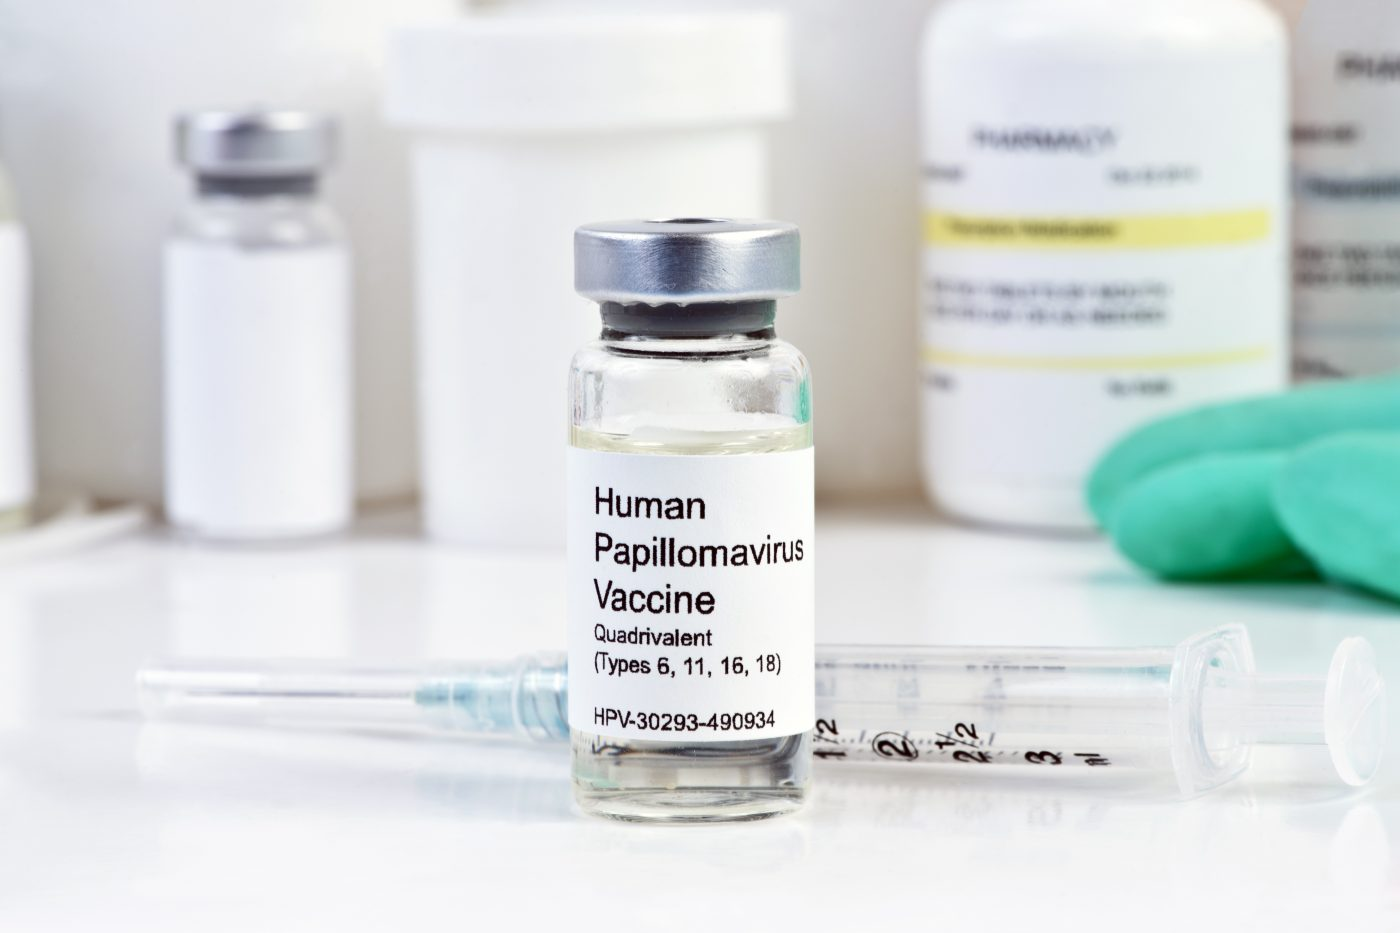 Novel Human Papillomavirus Vaccine Might Prevent 80% of Cervical Cancers